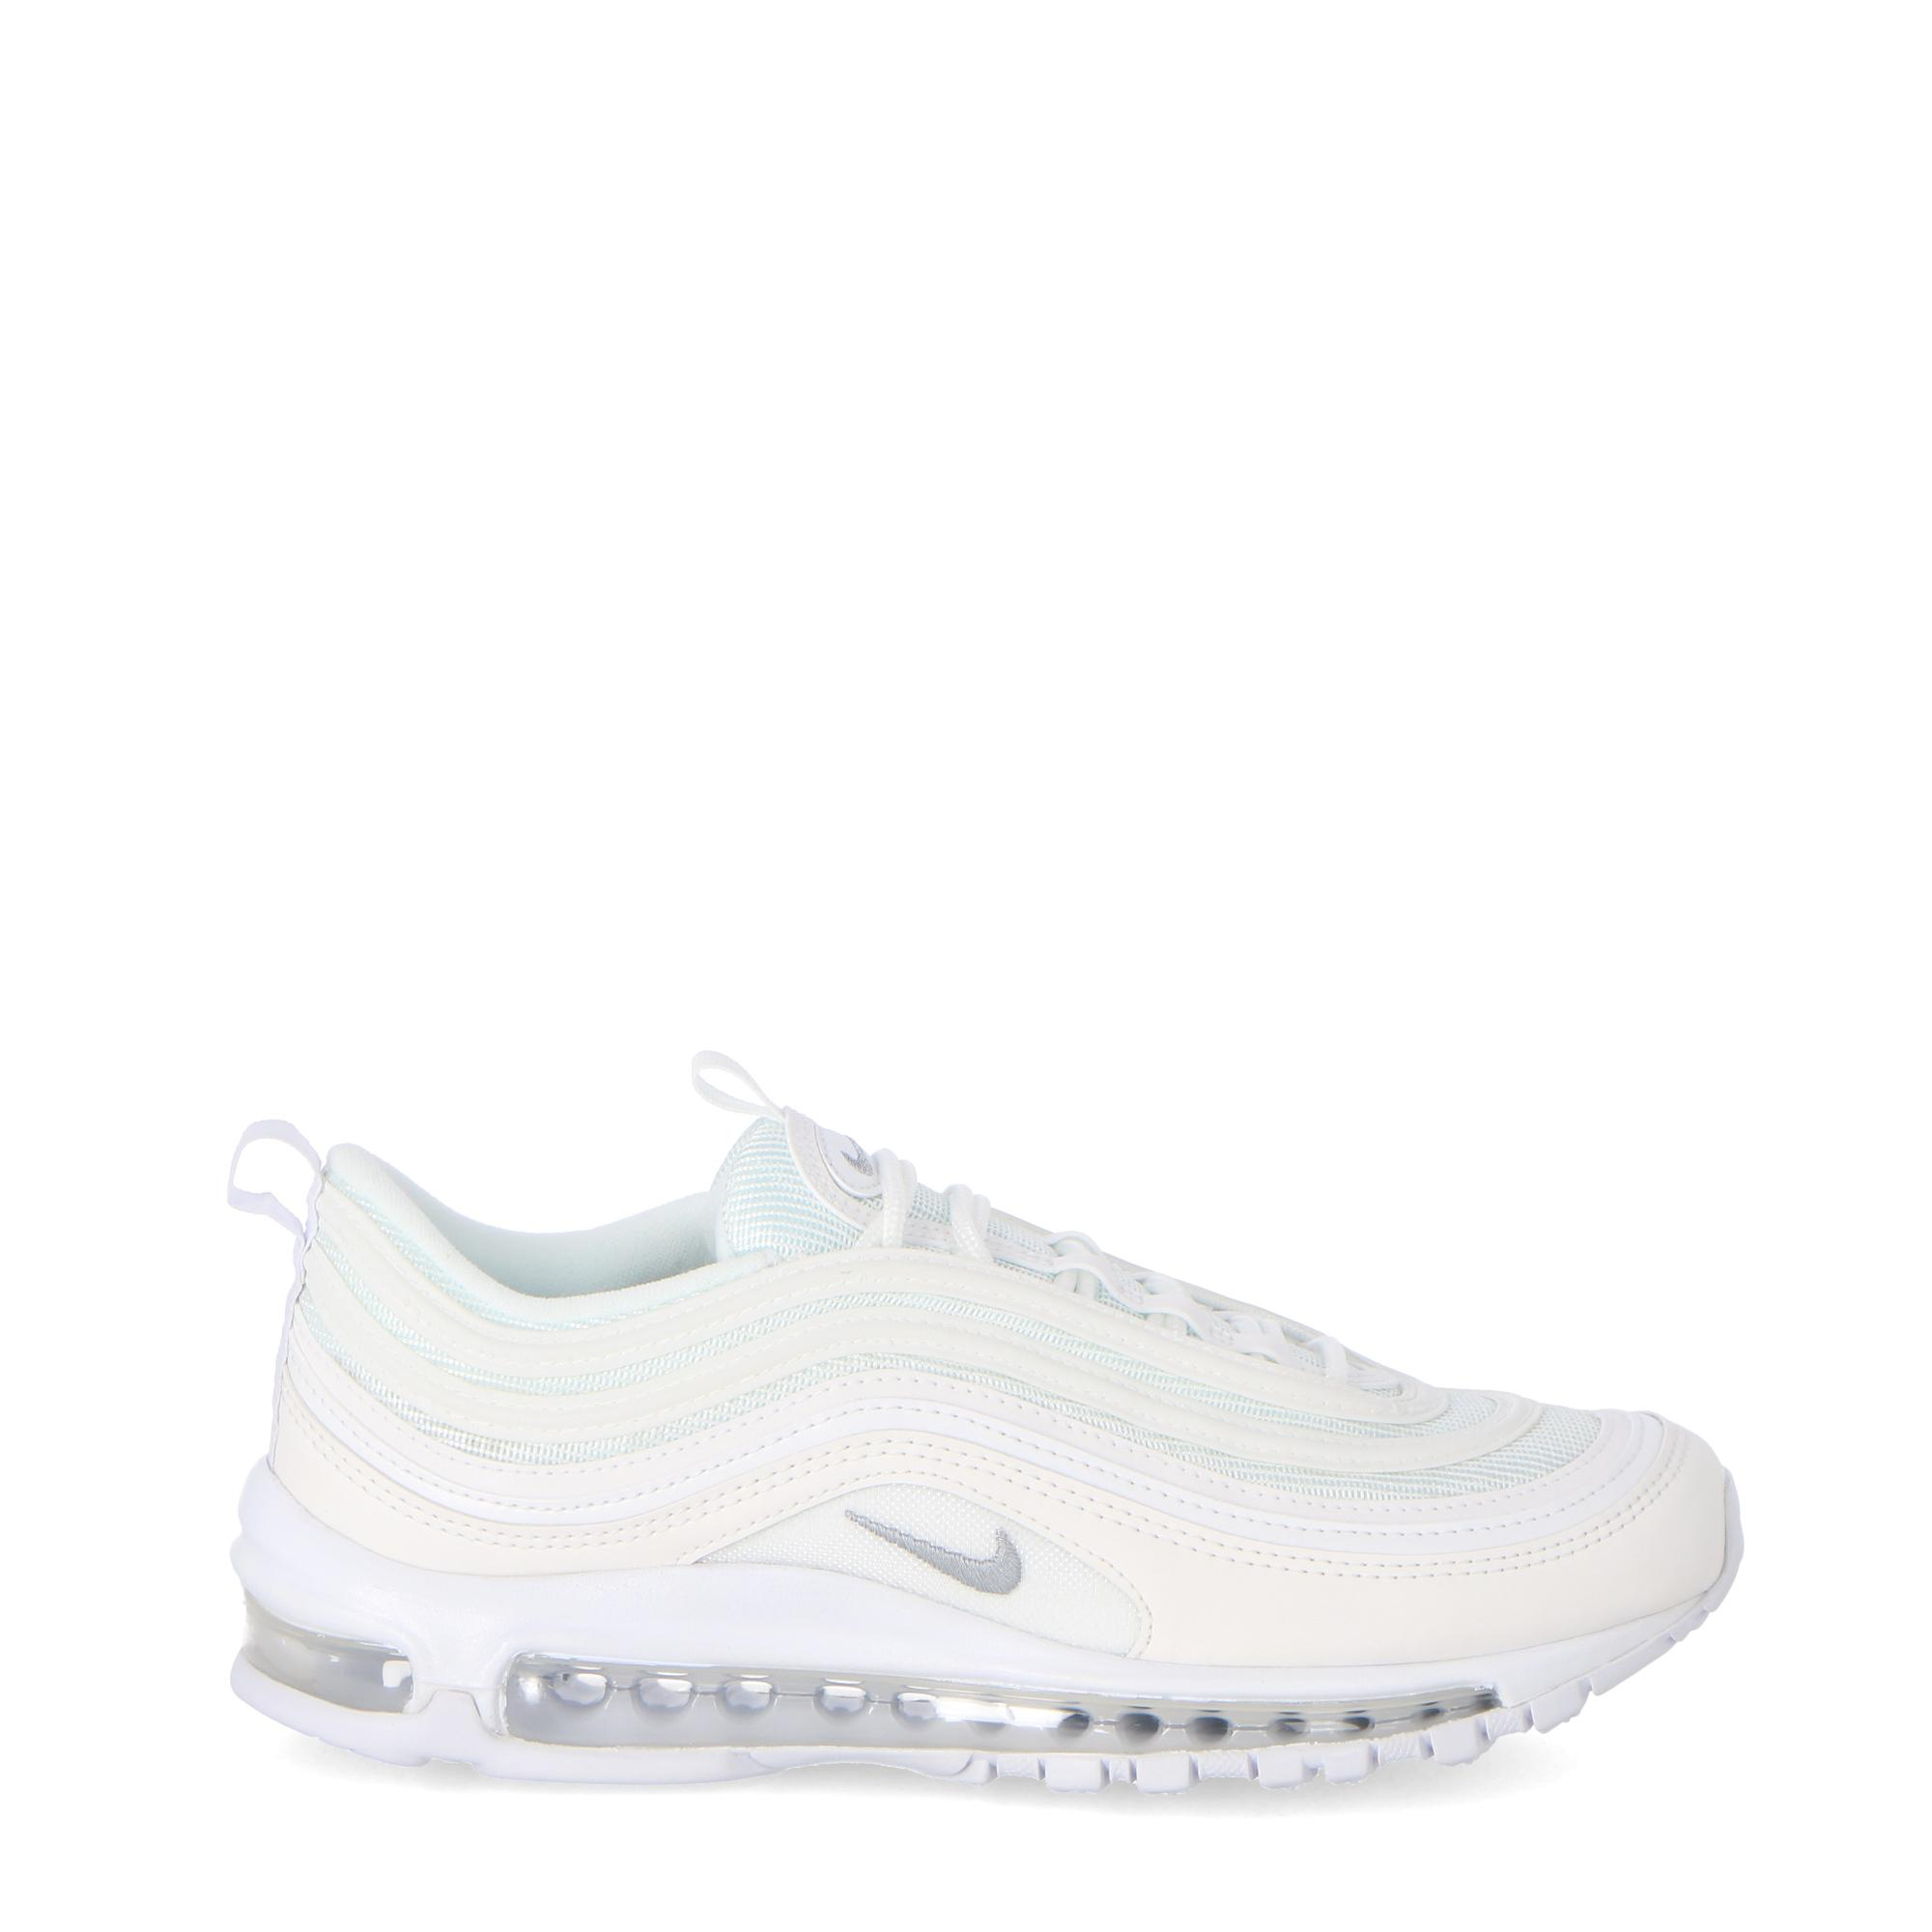 premium selection 98d4d 353b3 NIKE AIR MAX 97